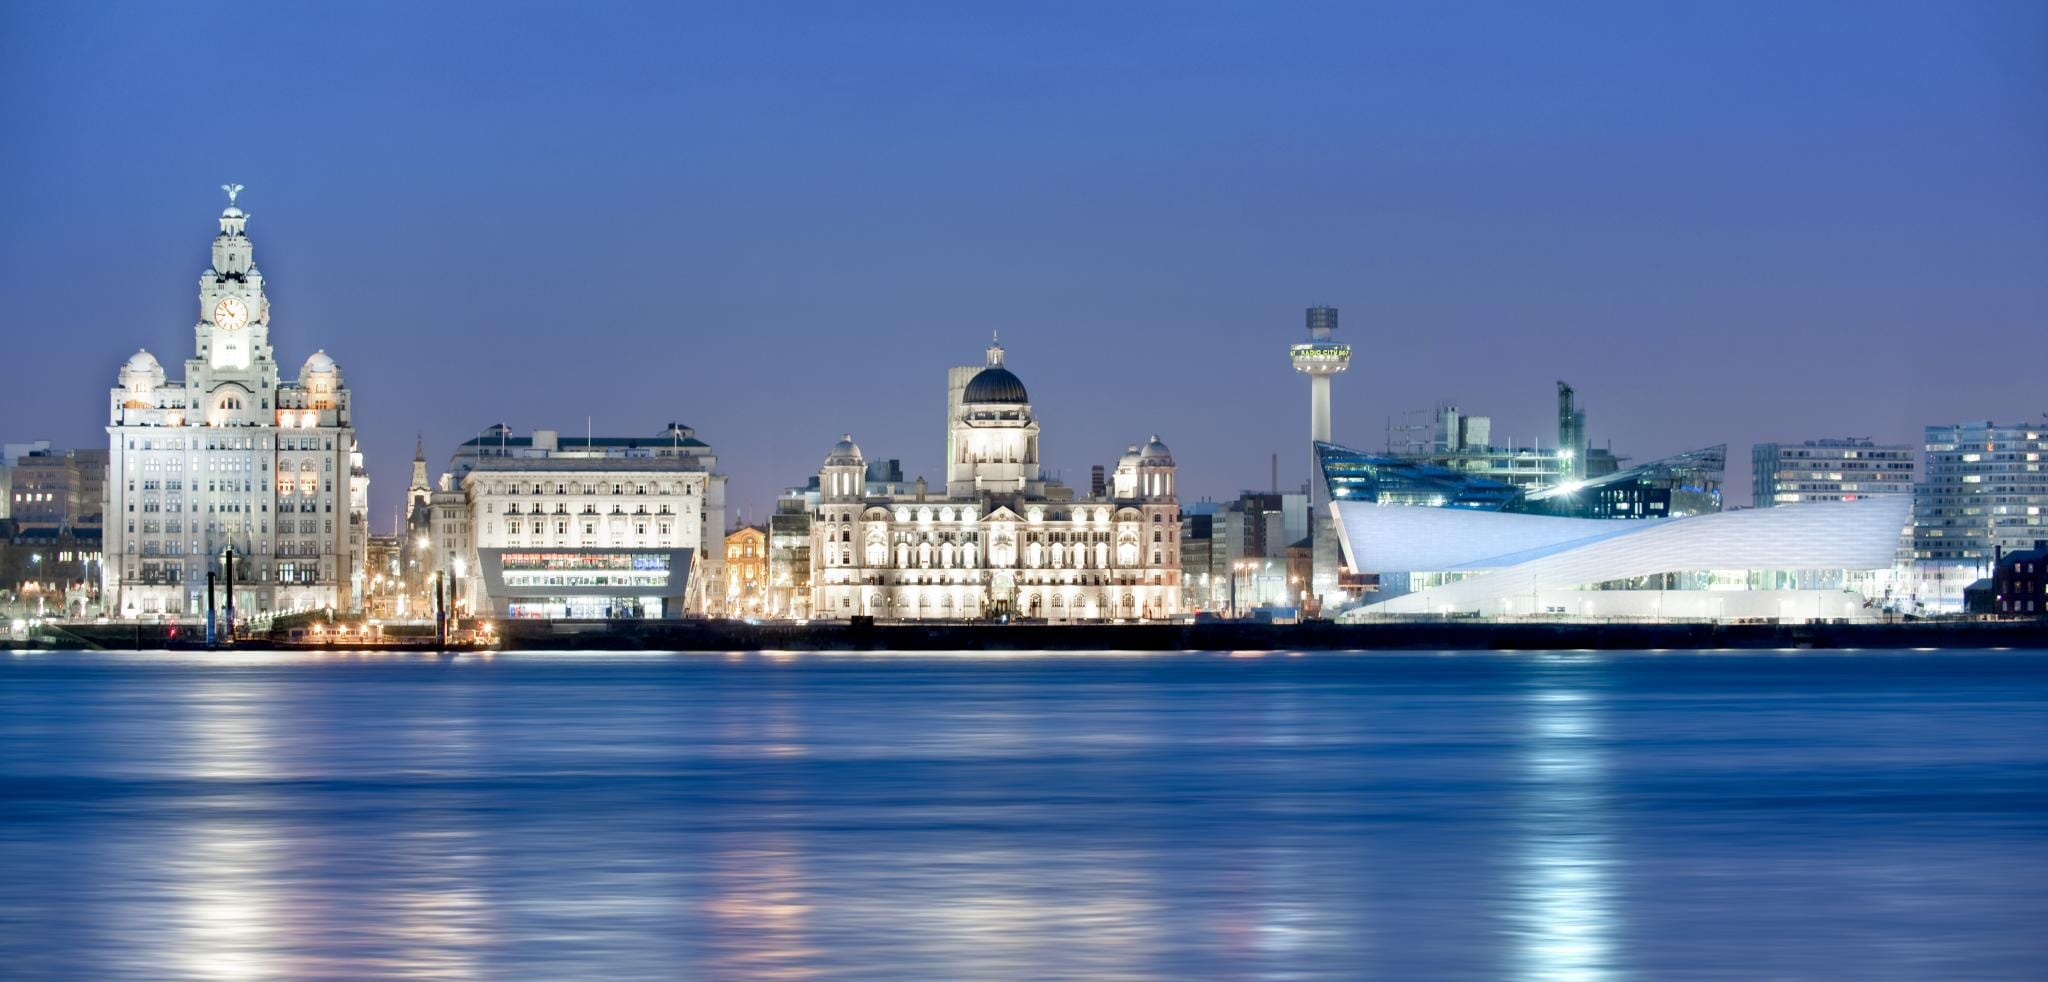 What Is Club Liverpool Liverpool Convention Bureau